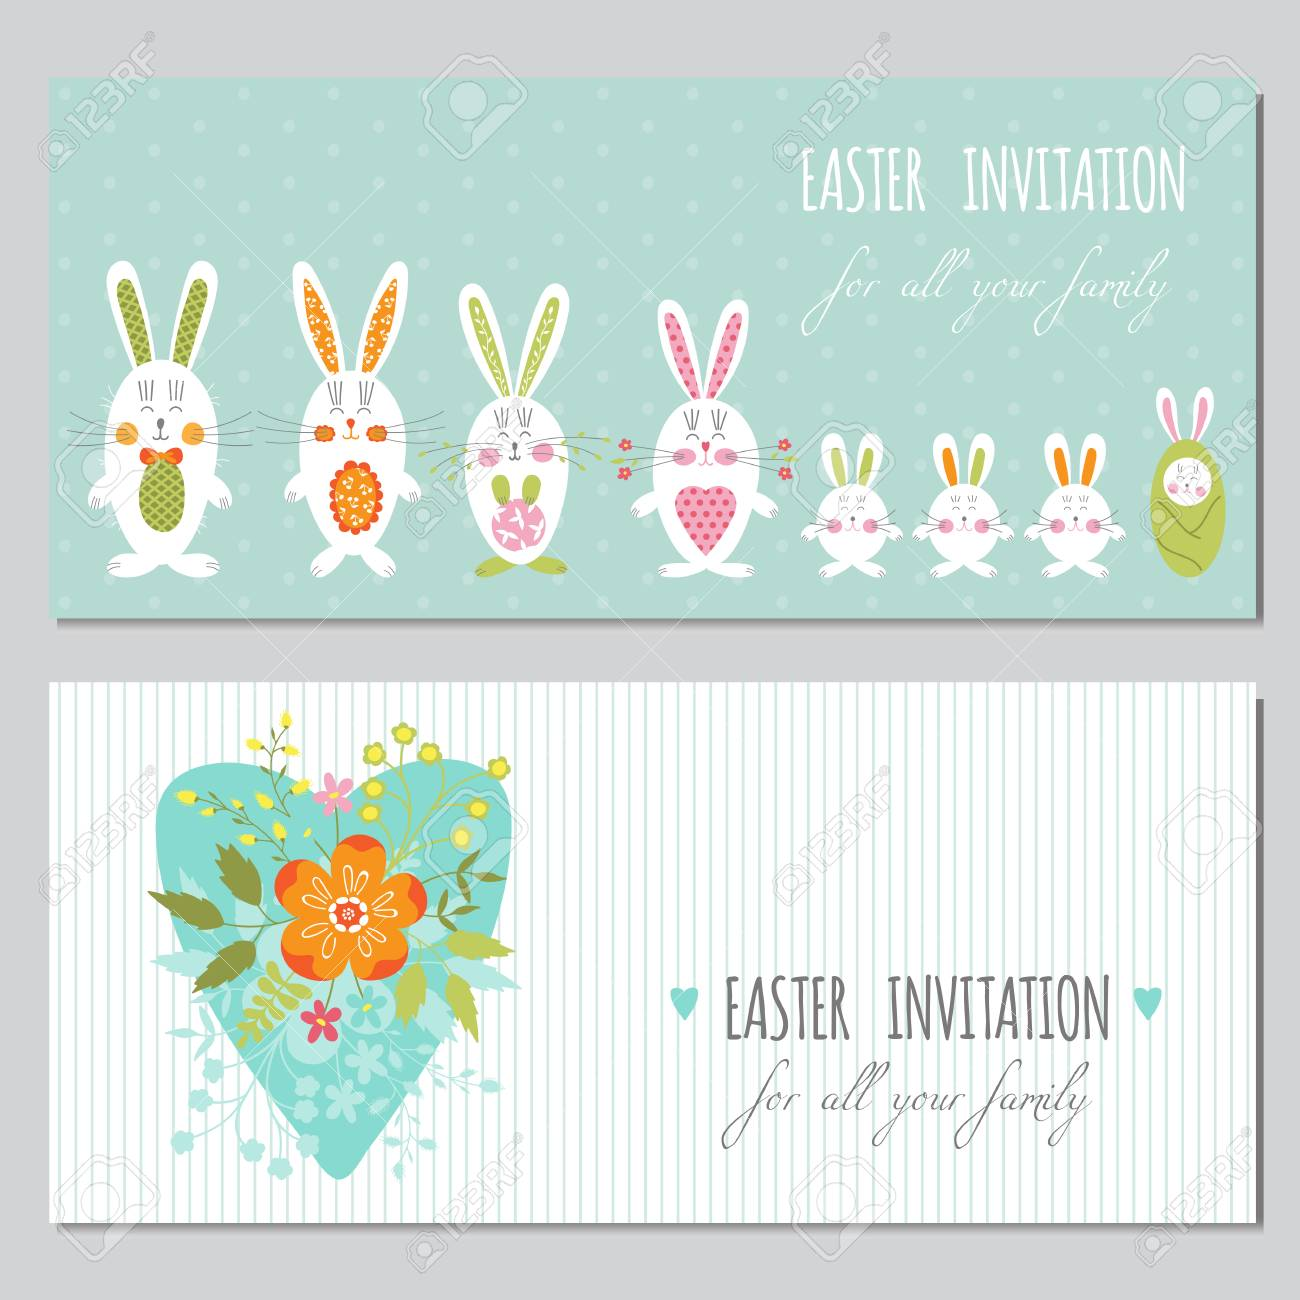 image about Easter Stationery Printable titled Vector preset of horizontal banner templates. Vibrant spring printable..